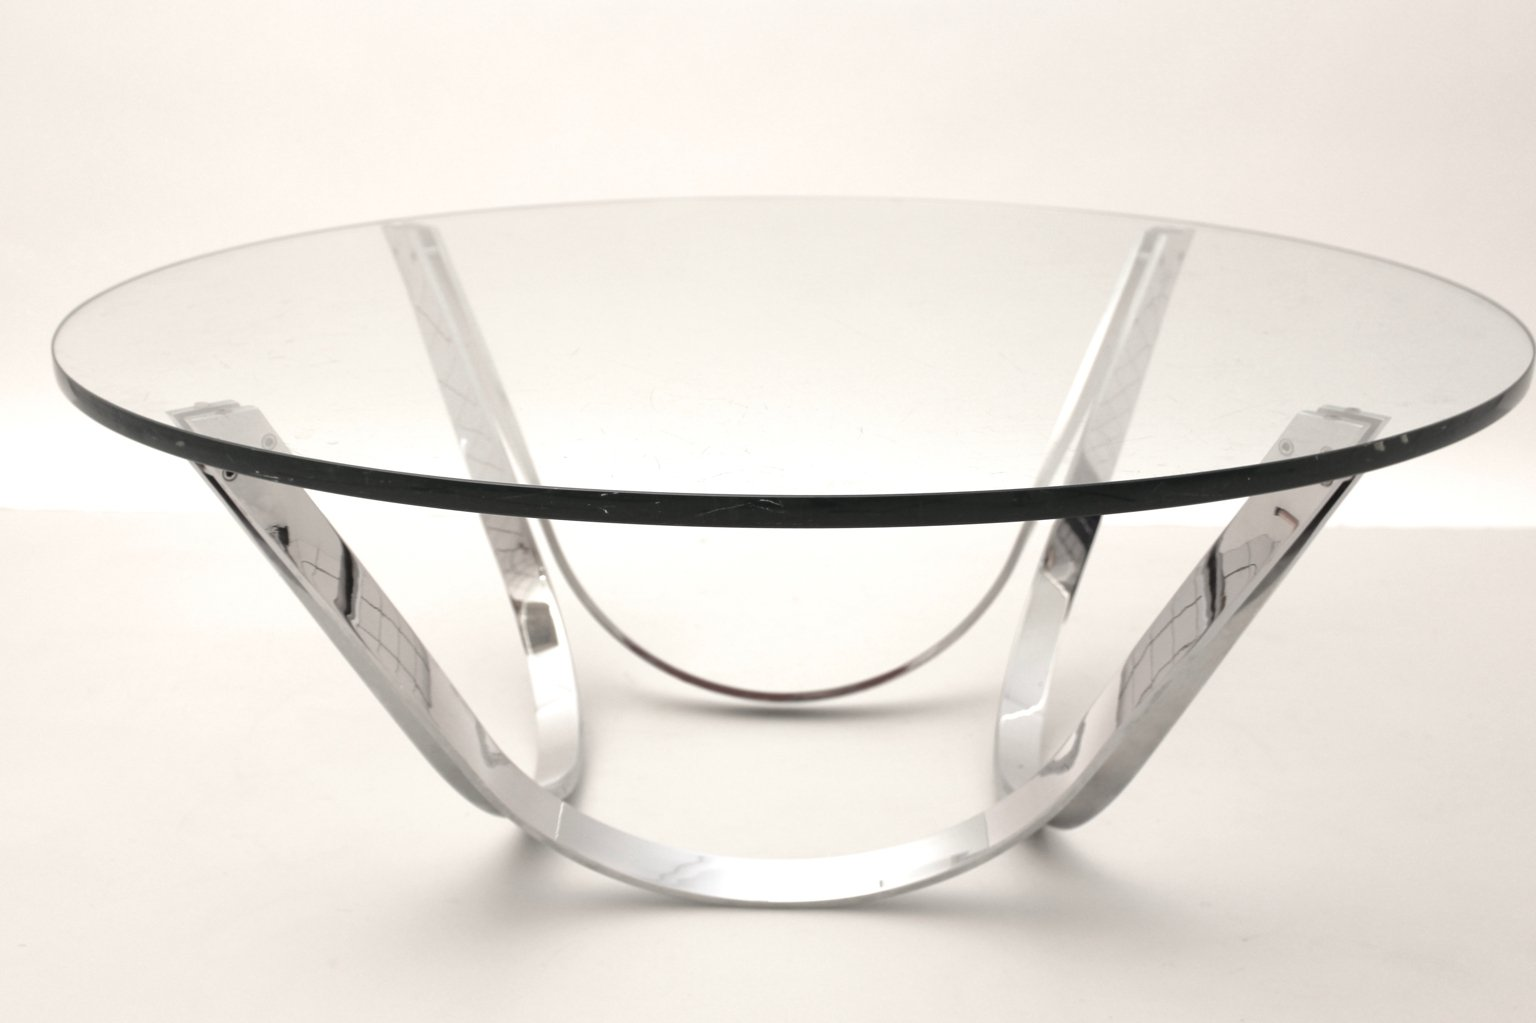 Modern coffe table Glass Top Price Per Piece Pamono Midcentury Modern Coffee Table By Werner Linder For Bacher 1969